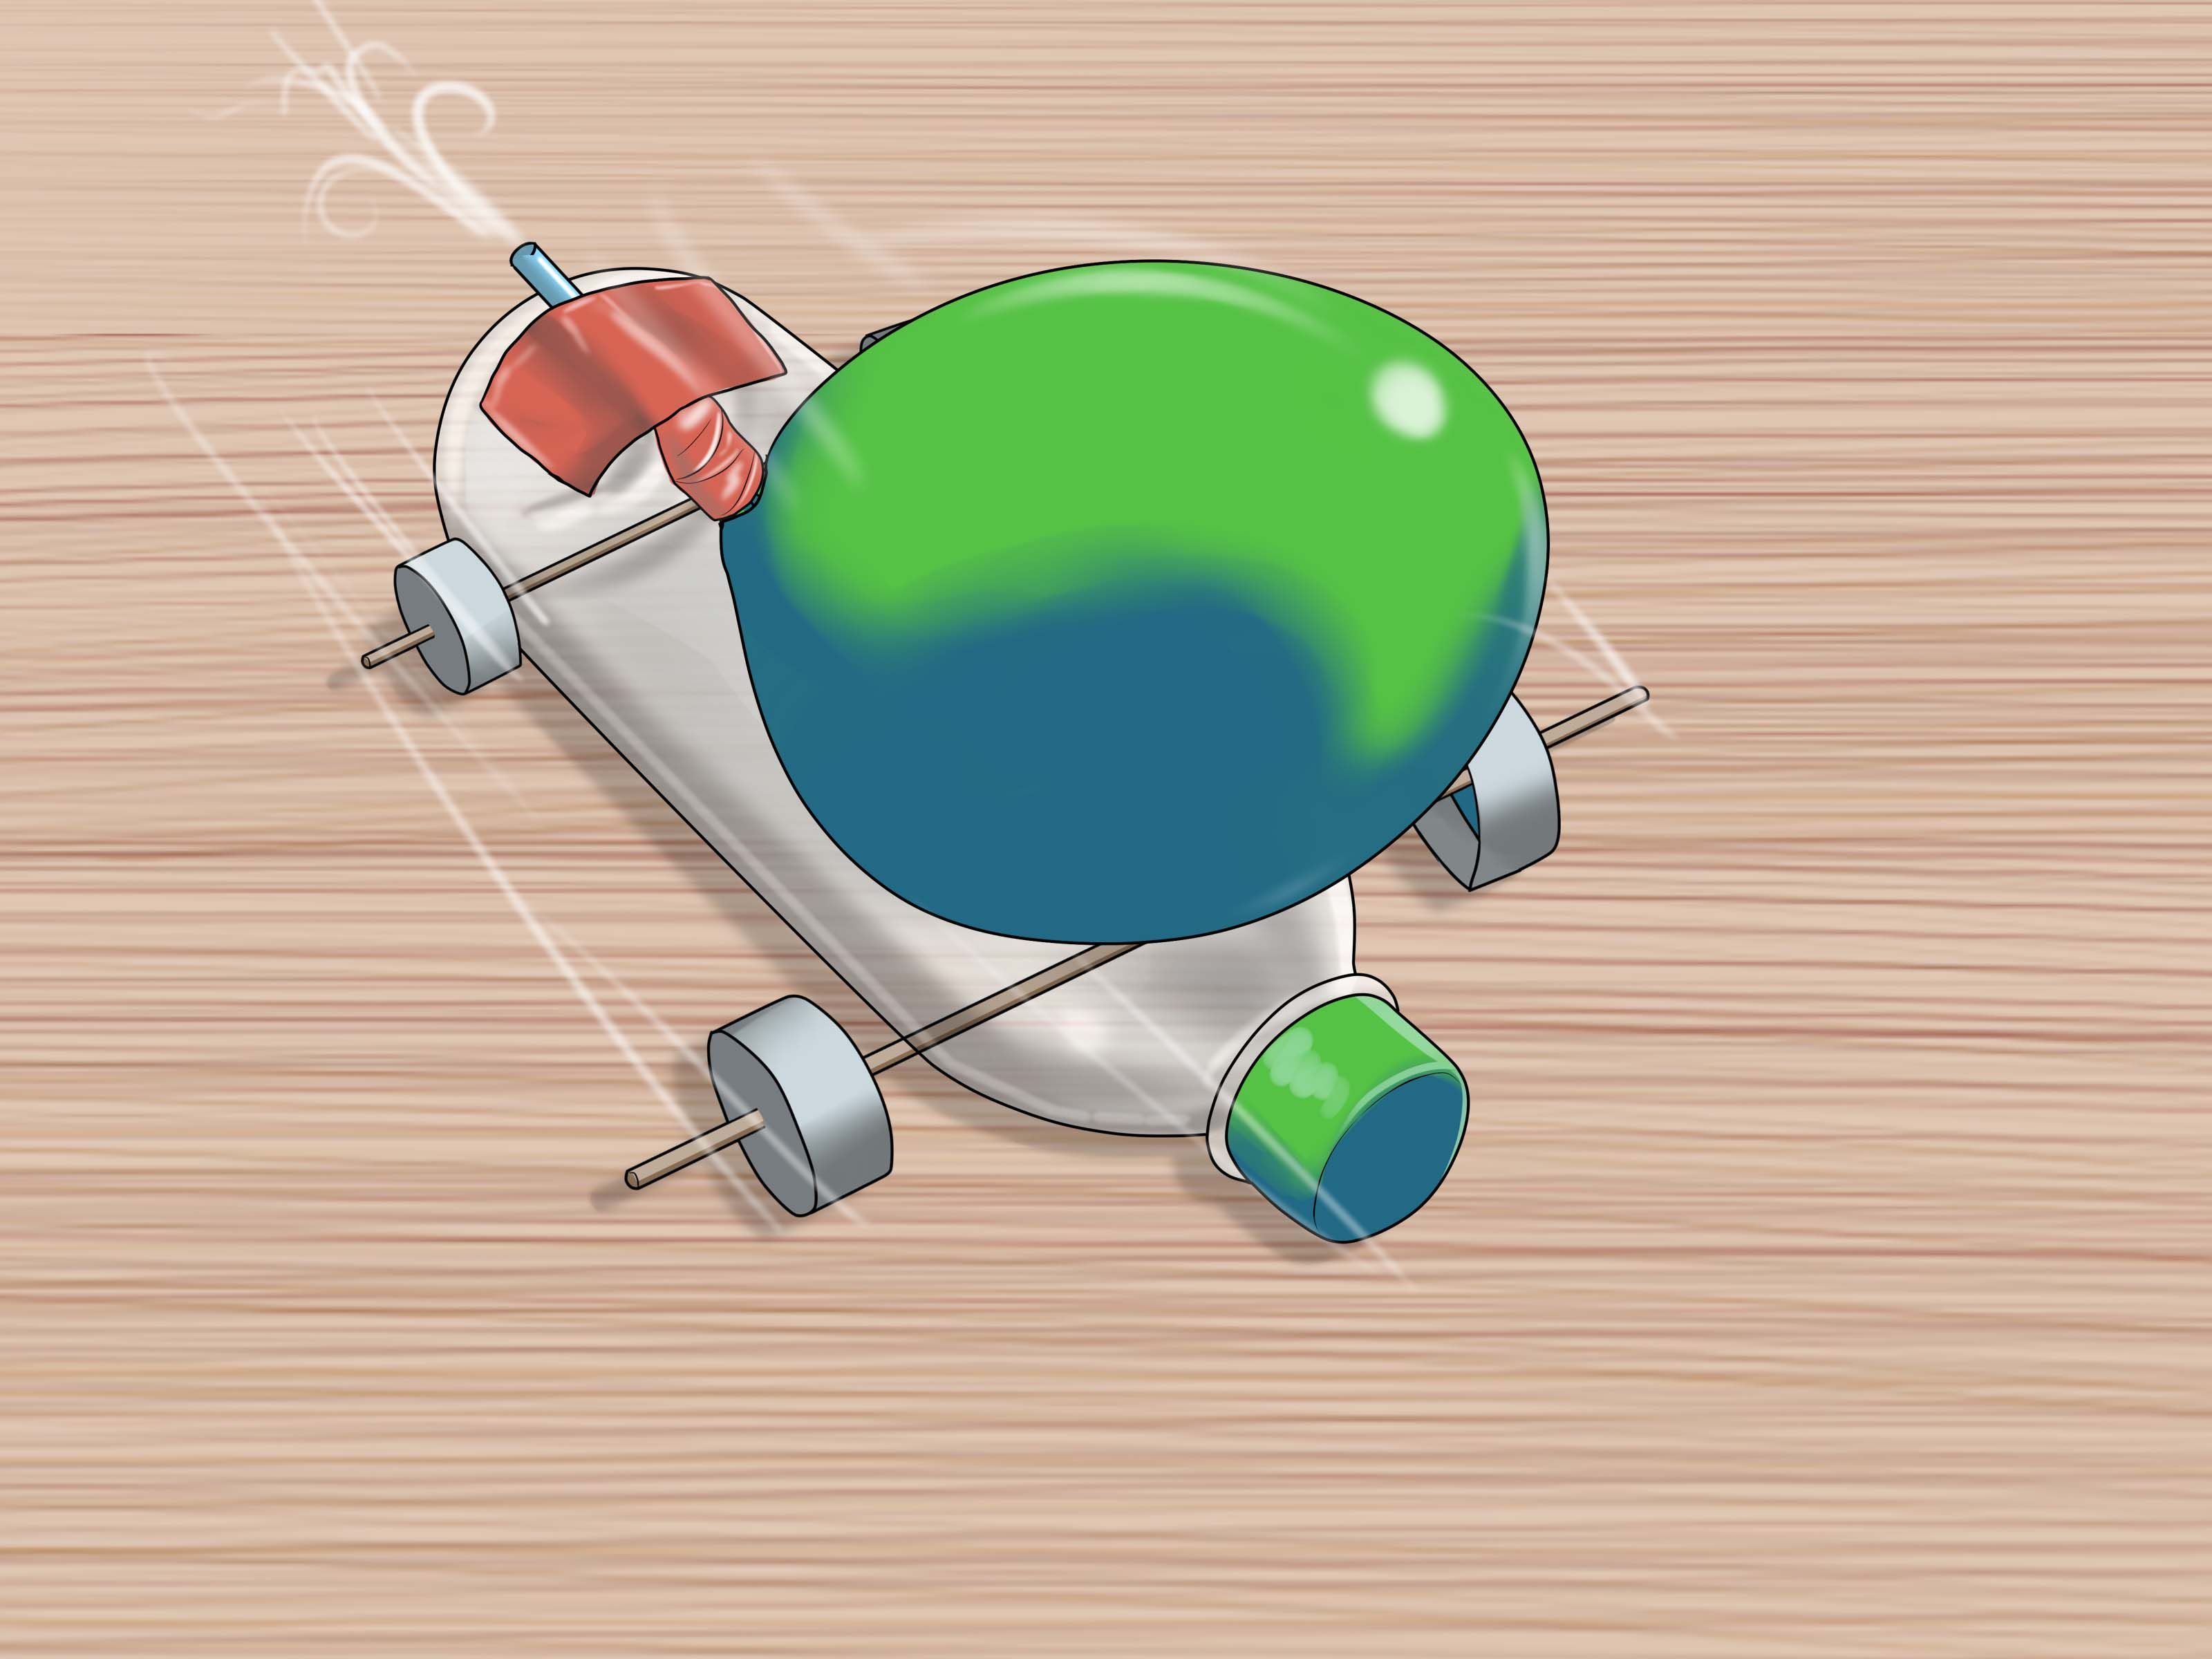 balloon powered car essay Lemelson-mit workshops for teachers engineergirl essay winners 2018  pedal power  activity: balloon-powered car  the mass of the balloon may  cause the car to tilt nose down to the floor, causing a poor start.